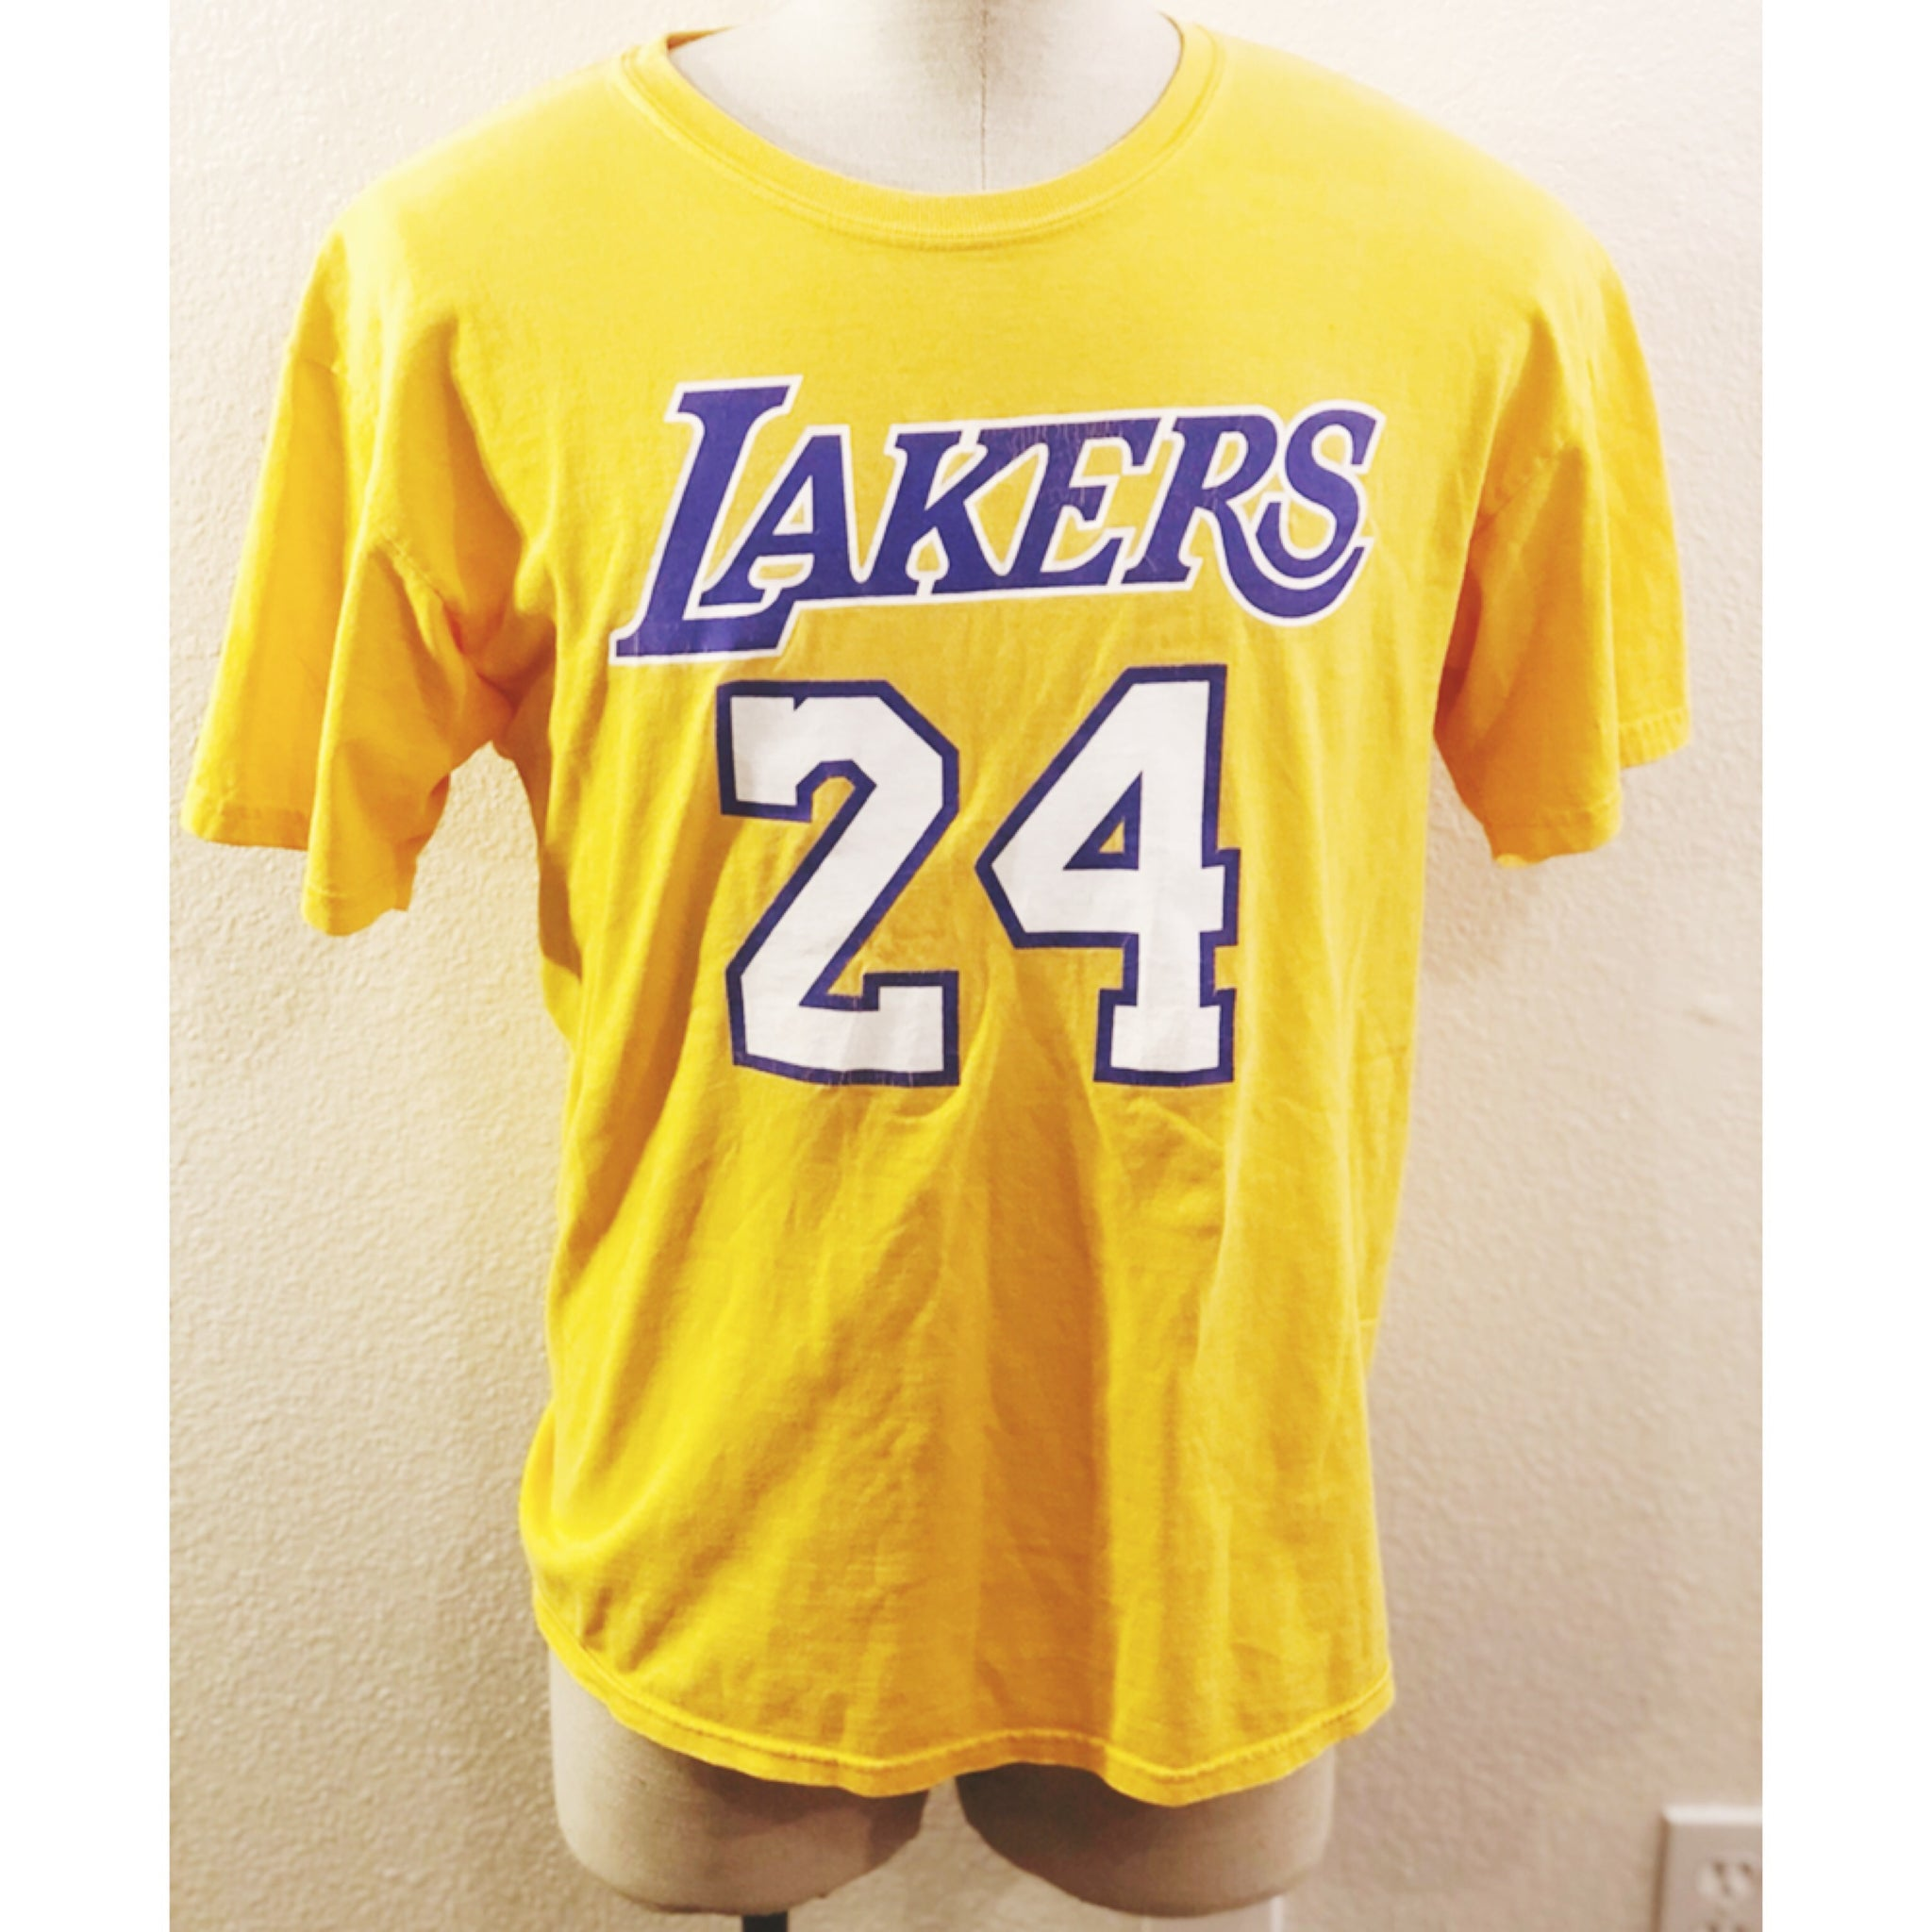 save off 8eda8 bc1a7 VINTAGE NBA LOS ANGELES LAKERS 24 KOBE BRYANT TSHIRT – Swans ...